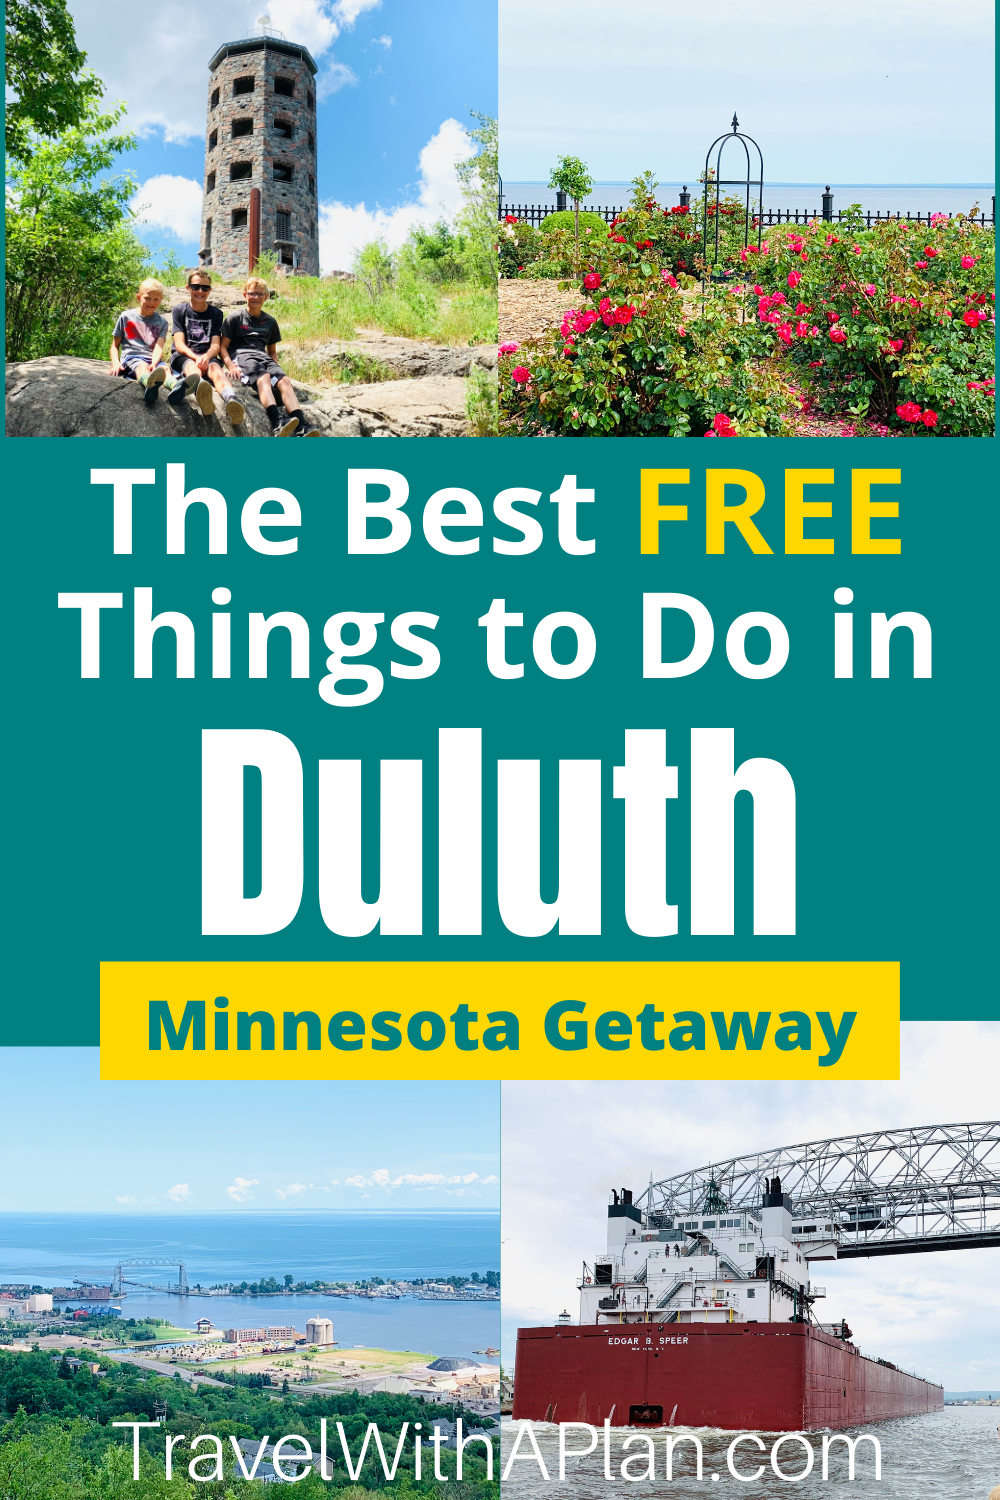 Heading to Duluth, MN for a Midwest getaway?  Find out 11 free things to do in Duluth that you are sure to love!  These awesome family-friendly activities can be enjoyed at no cost to you!  #thingstodoinduluth #duluthactivities #upnorth #northernminnesota #duluth #lakesuperior #canalpark